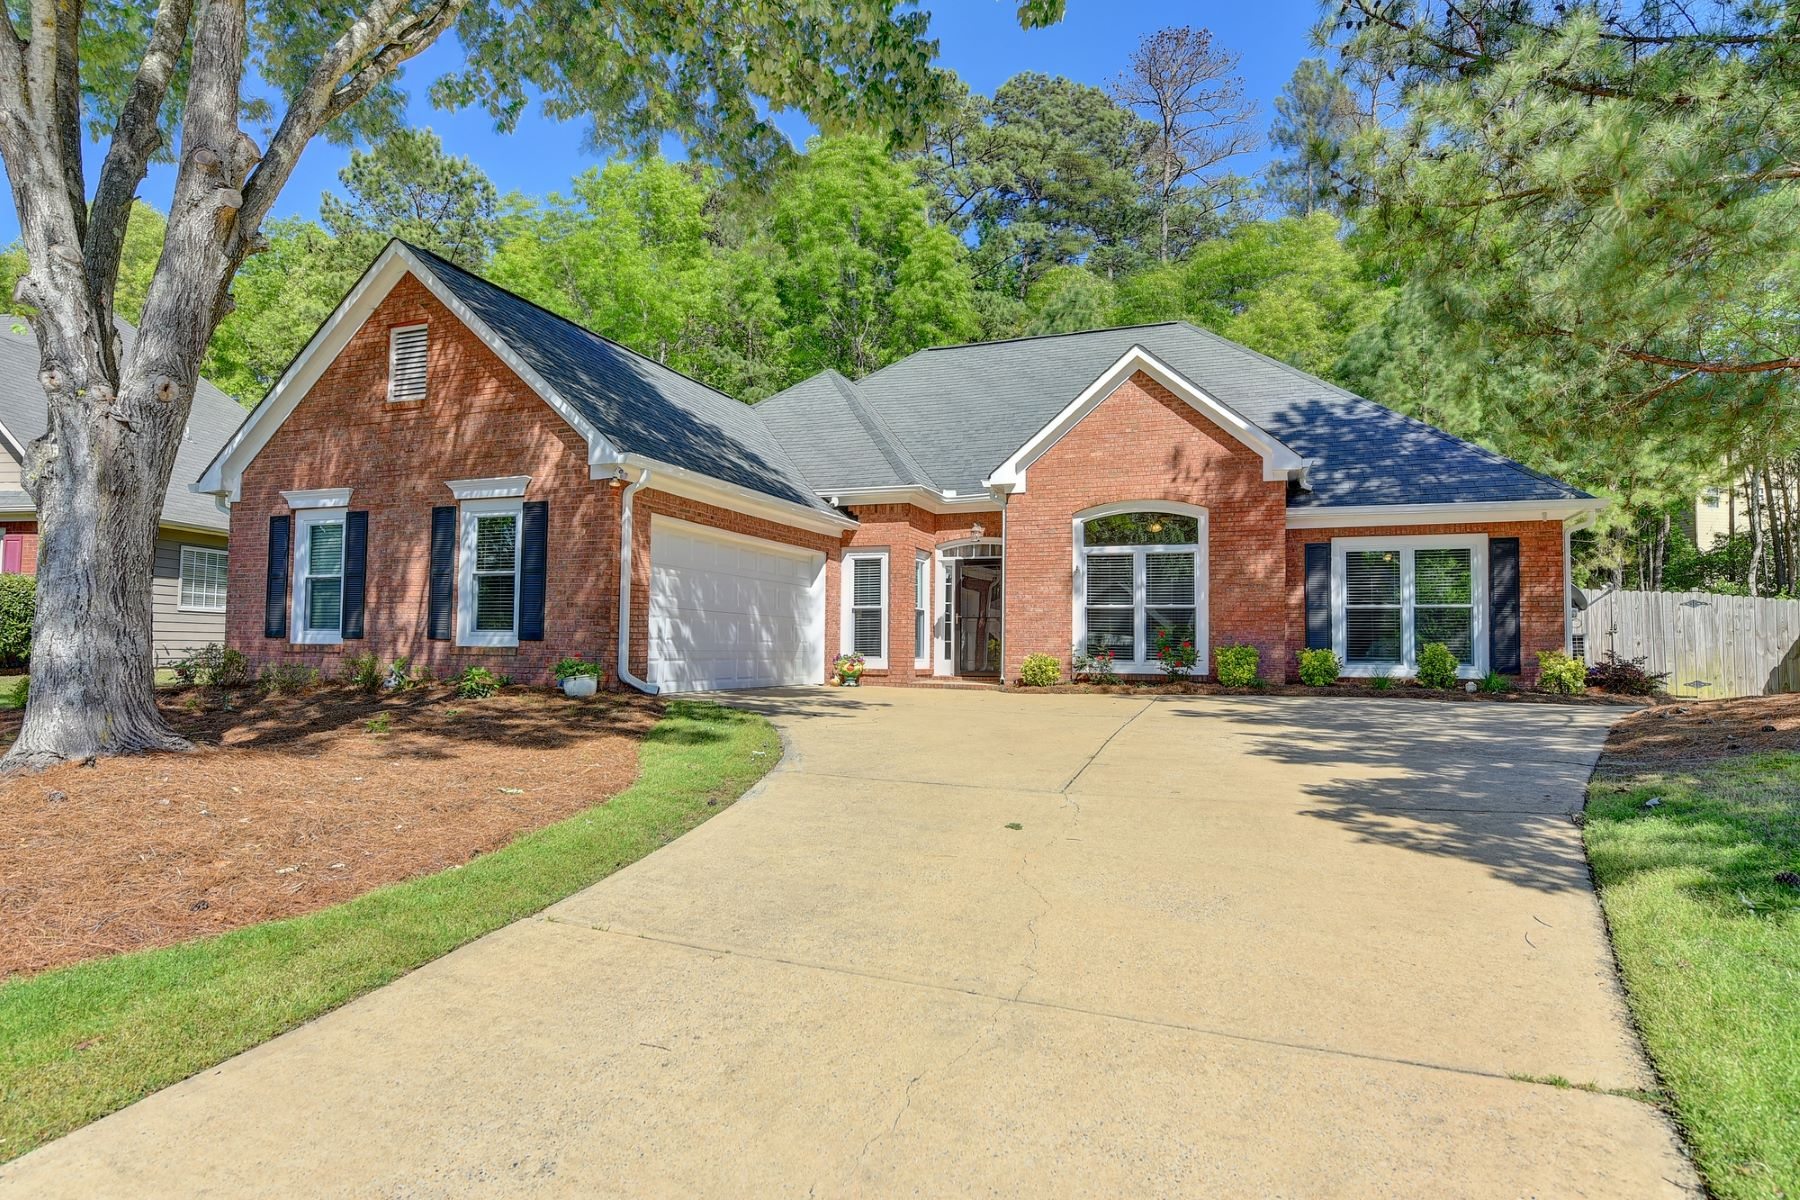 Single Family Homes for Sale at Charming Brick Traditional Ranch 3115 Goldmist Drive Buford, Georgia 30519 United States